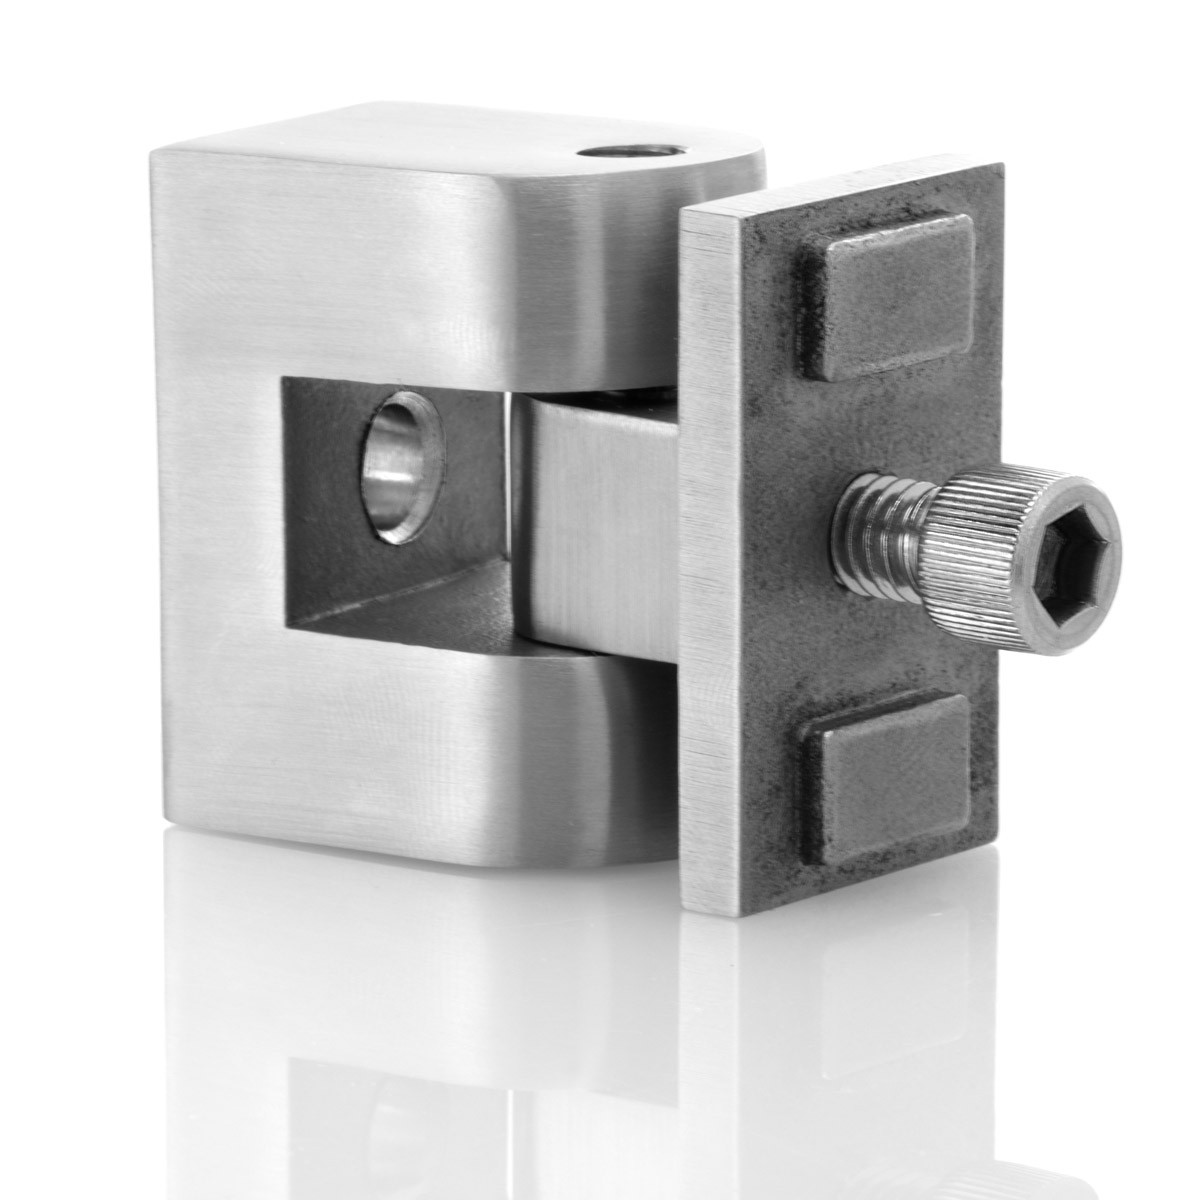 Stainless Steel Angle Bracket for Angle to Angle Connections by InvisiRail